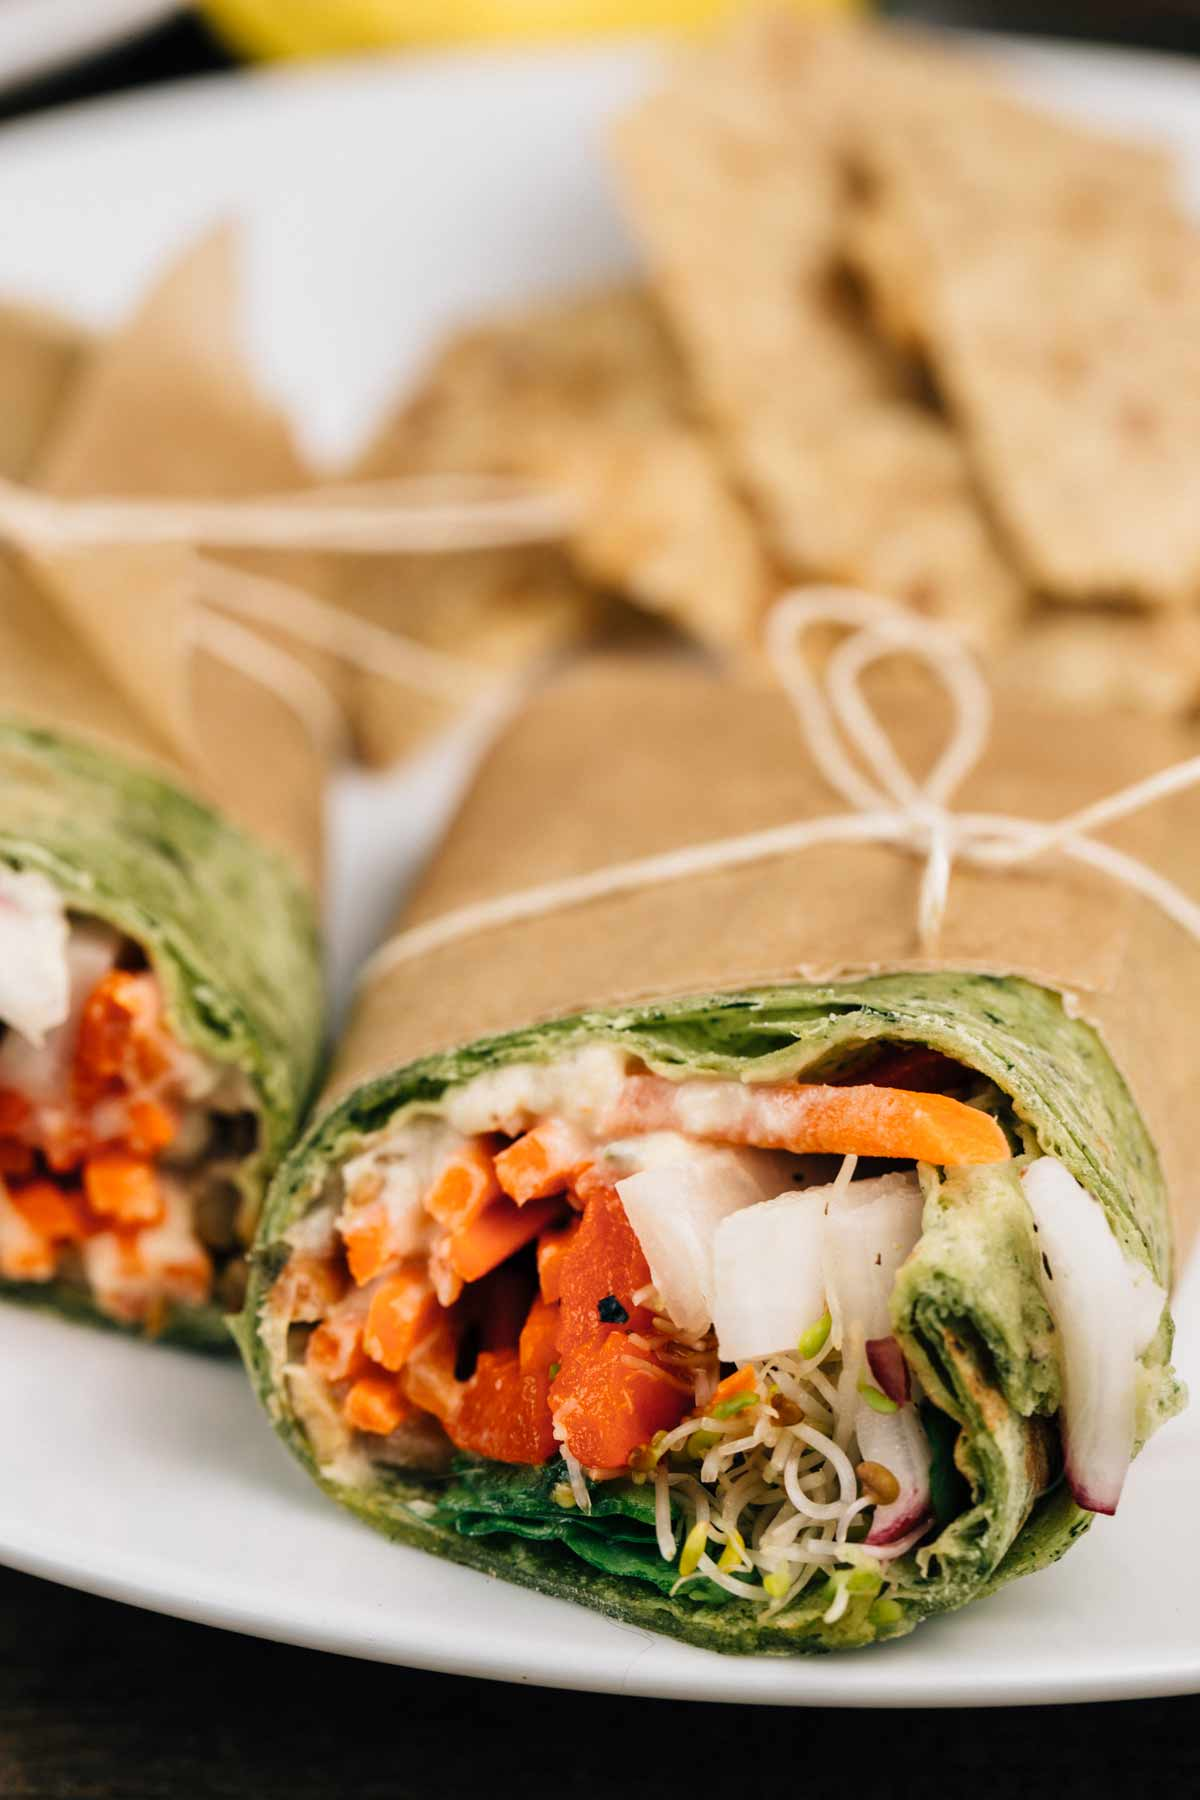 Sunflower Seed Hummus Wraps on a white plate, wrapped in parchment paper and tied with a string.